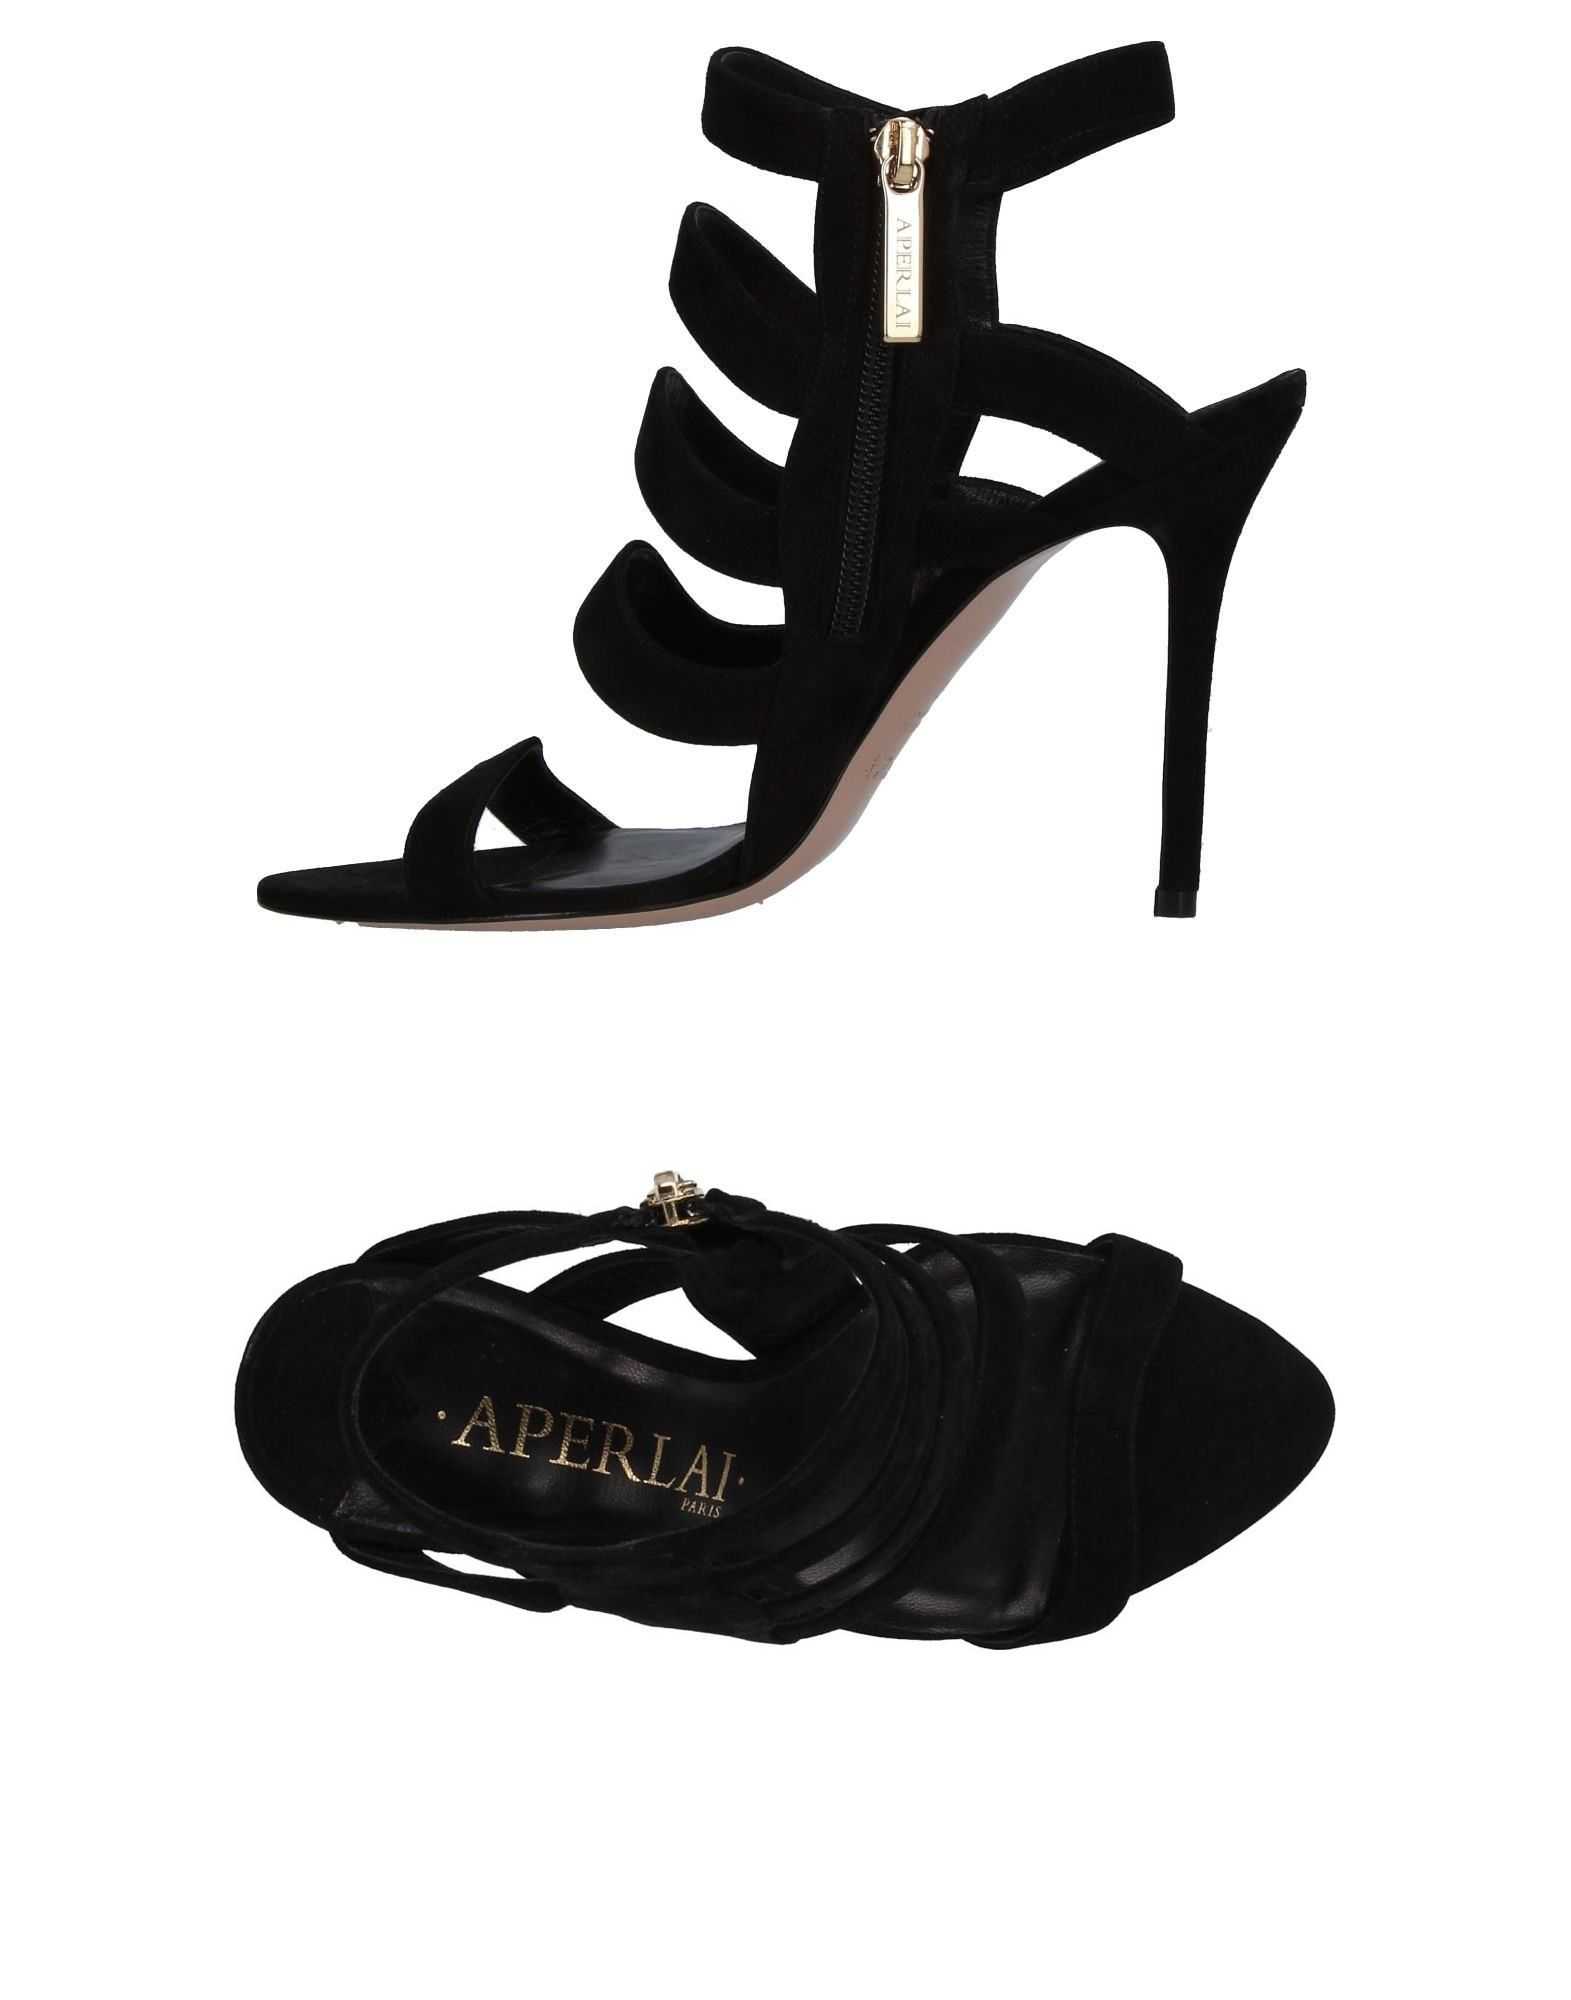 Aperlai Sandals Women - Women Sandals Aperlai Sandals online on  Canada - 11414812SS cbe34d